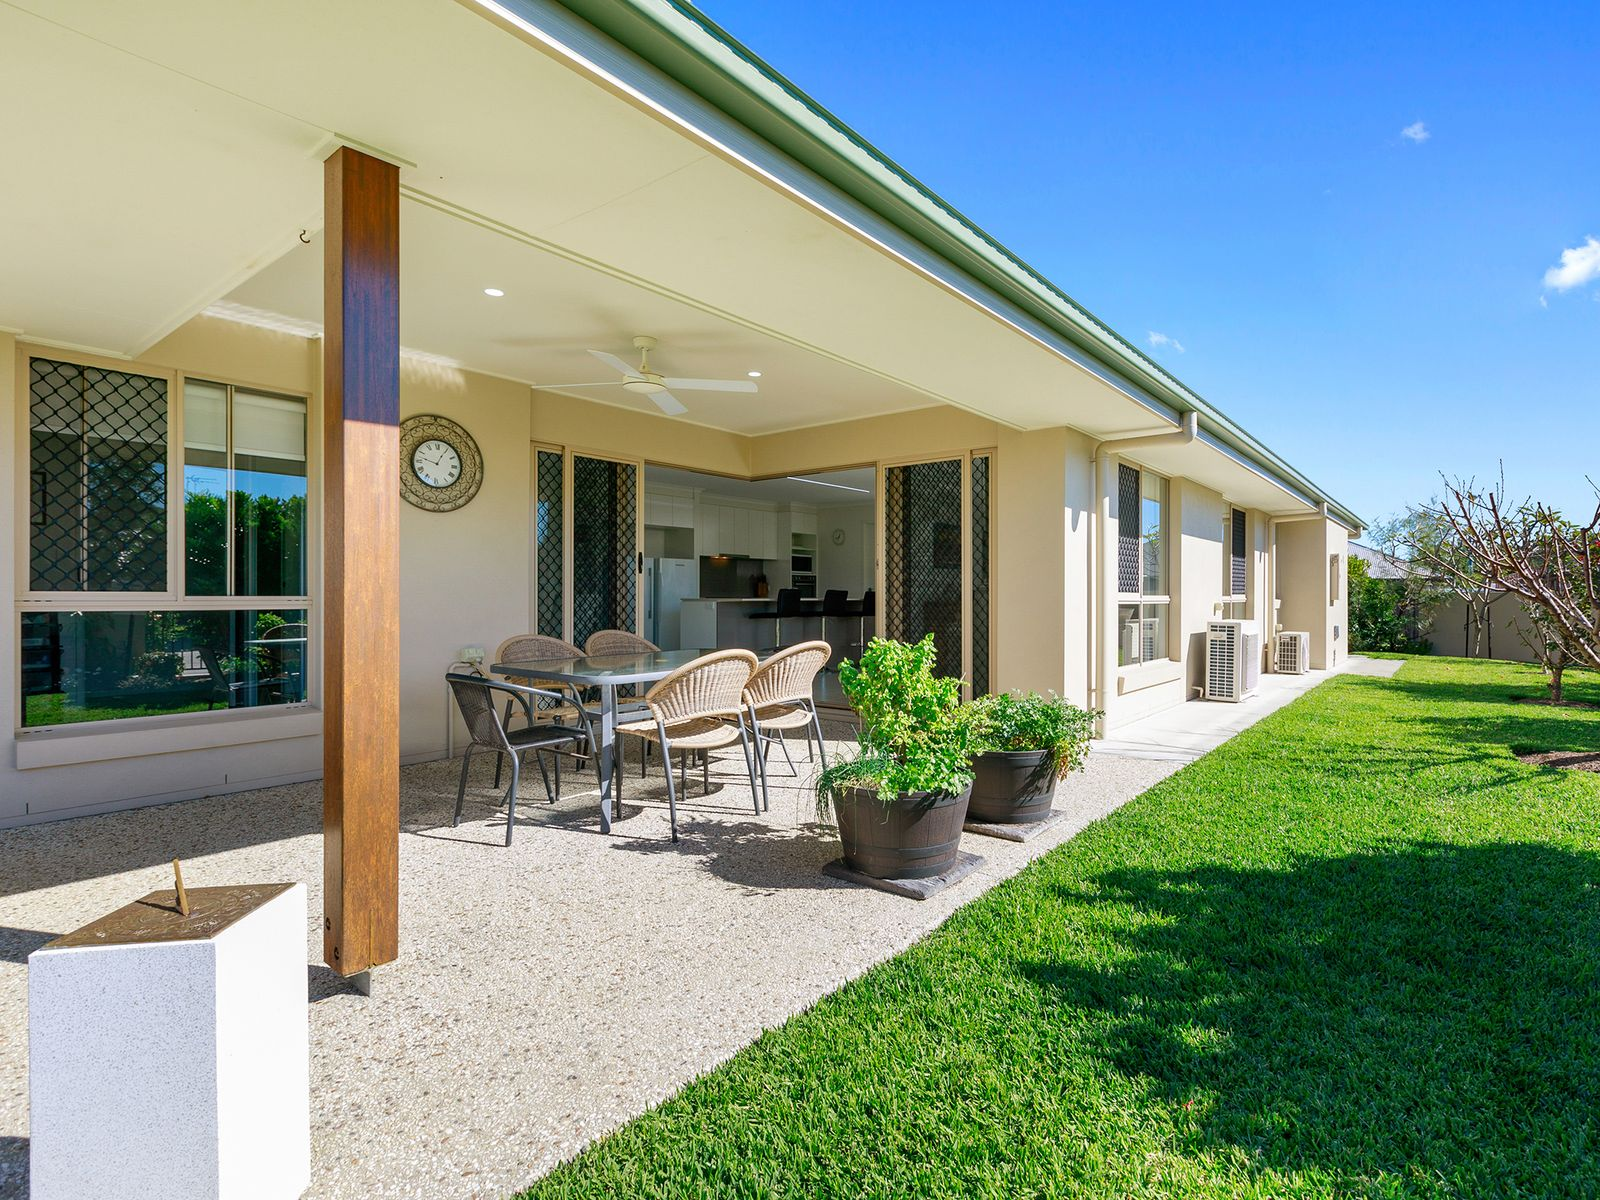 5 Bremer Street, Sippy Downs, QLD 4556